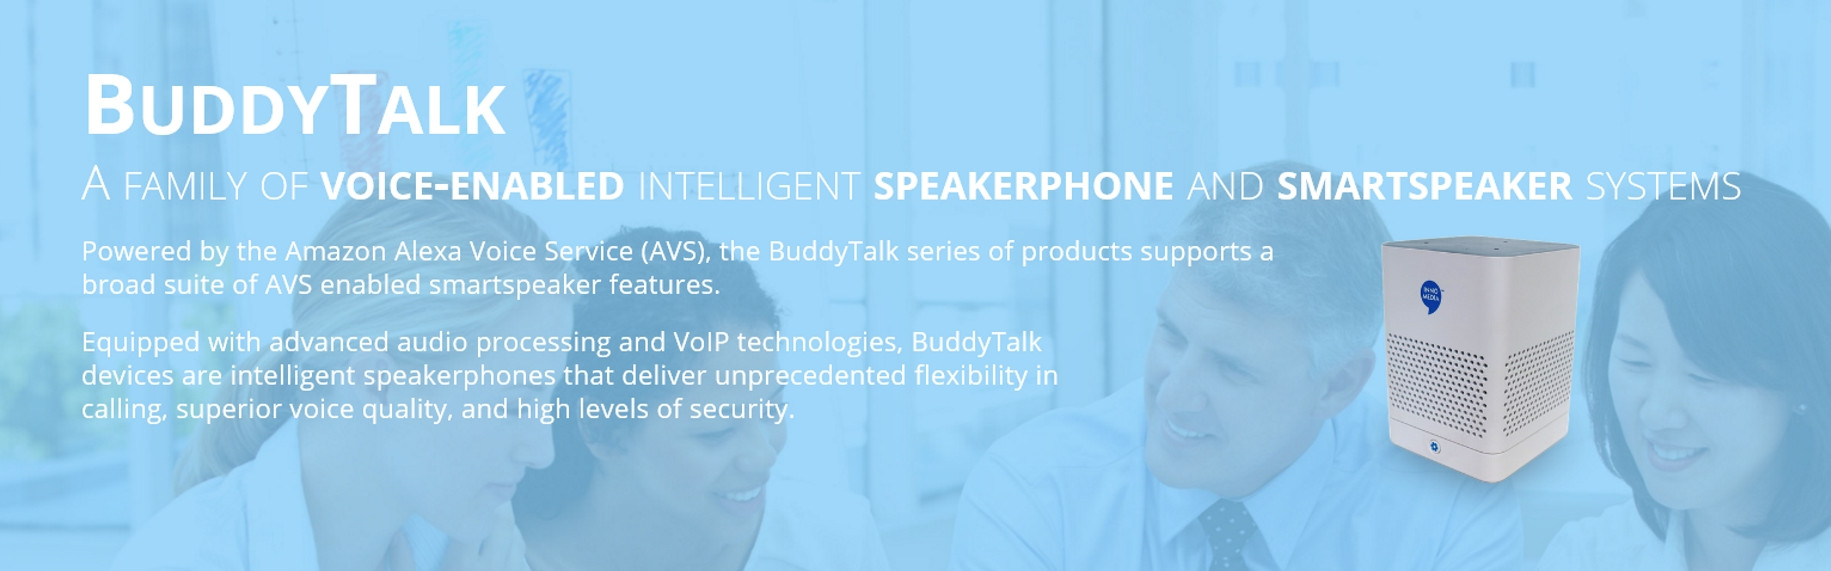 BuddyTalk Product Family